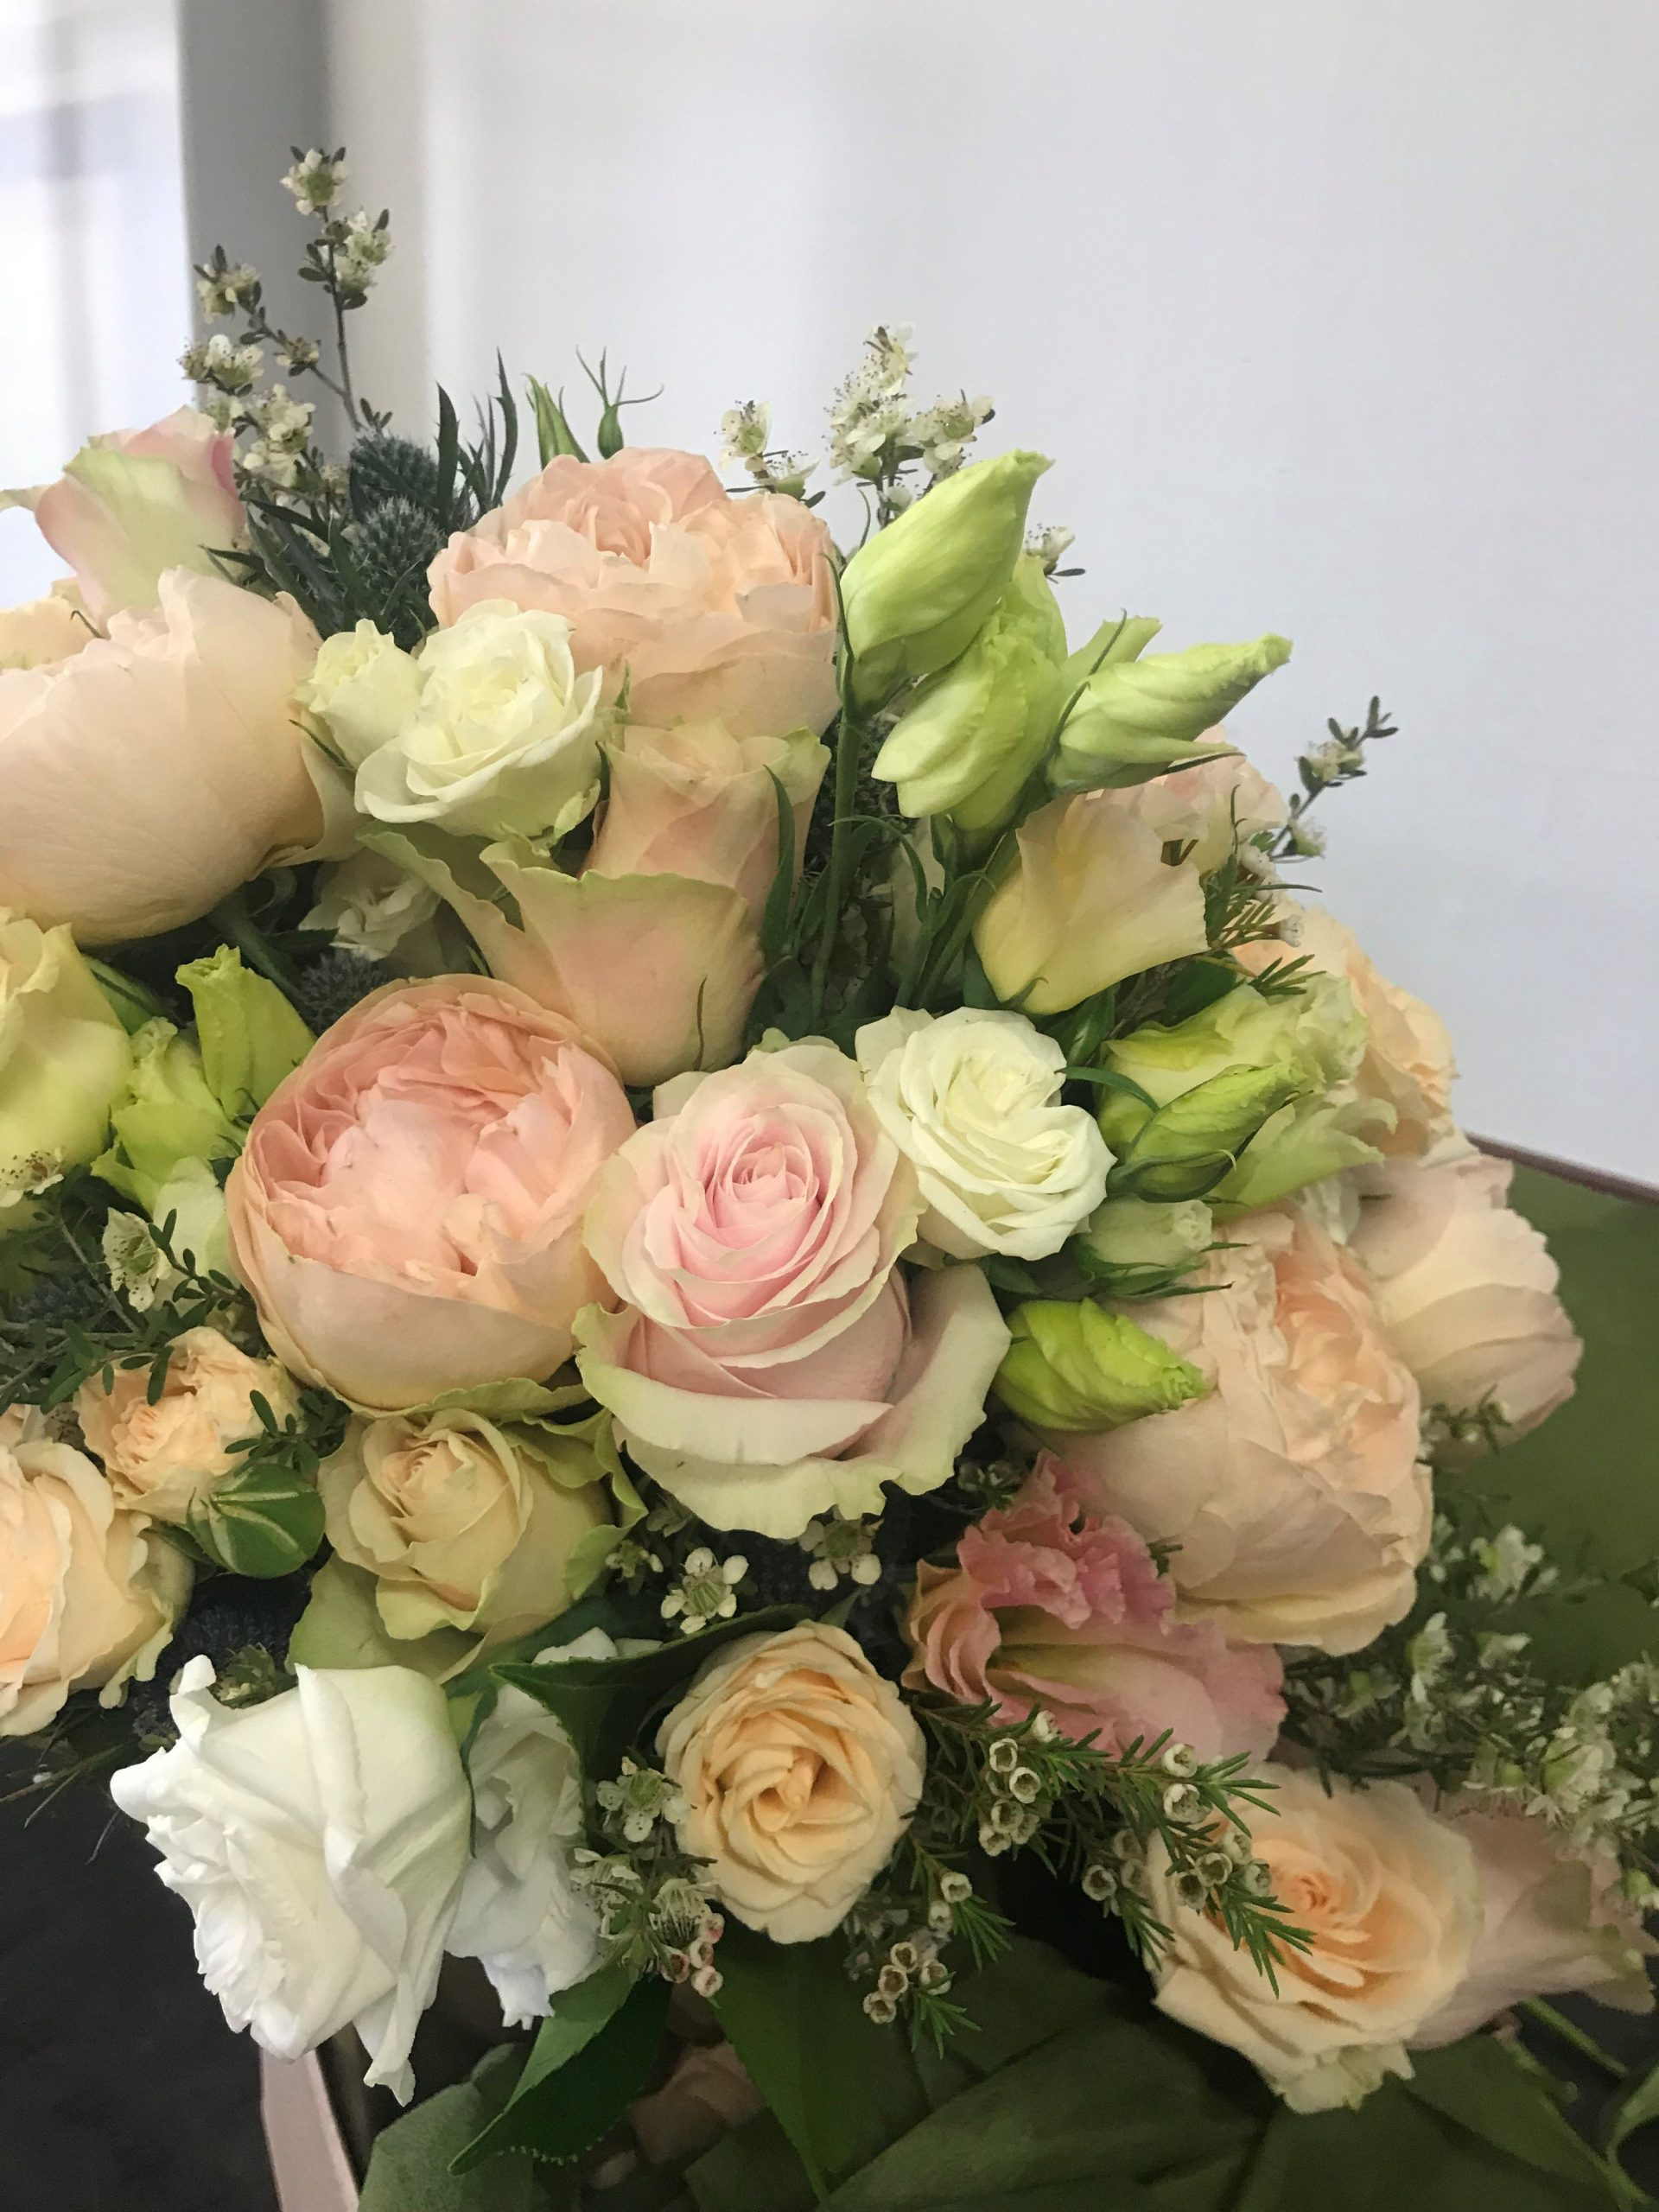 wedding bouquet, tamworth wedding, pastel bouquet, bridal bouquet tamworth, tamworth weddings, tamworth florist, florist tamworth, tamworth wedding florist, rose bouquet, blush bouquet